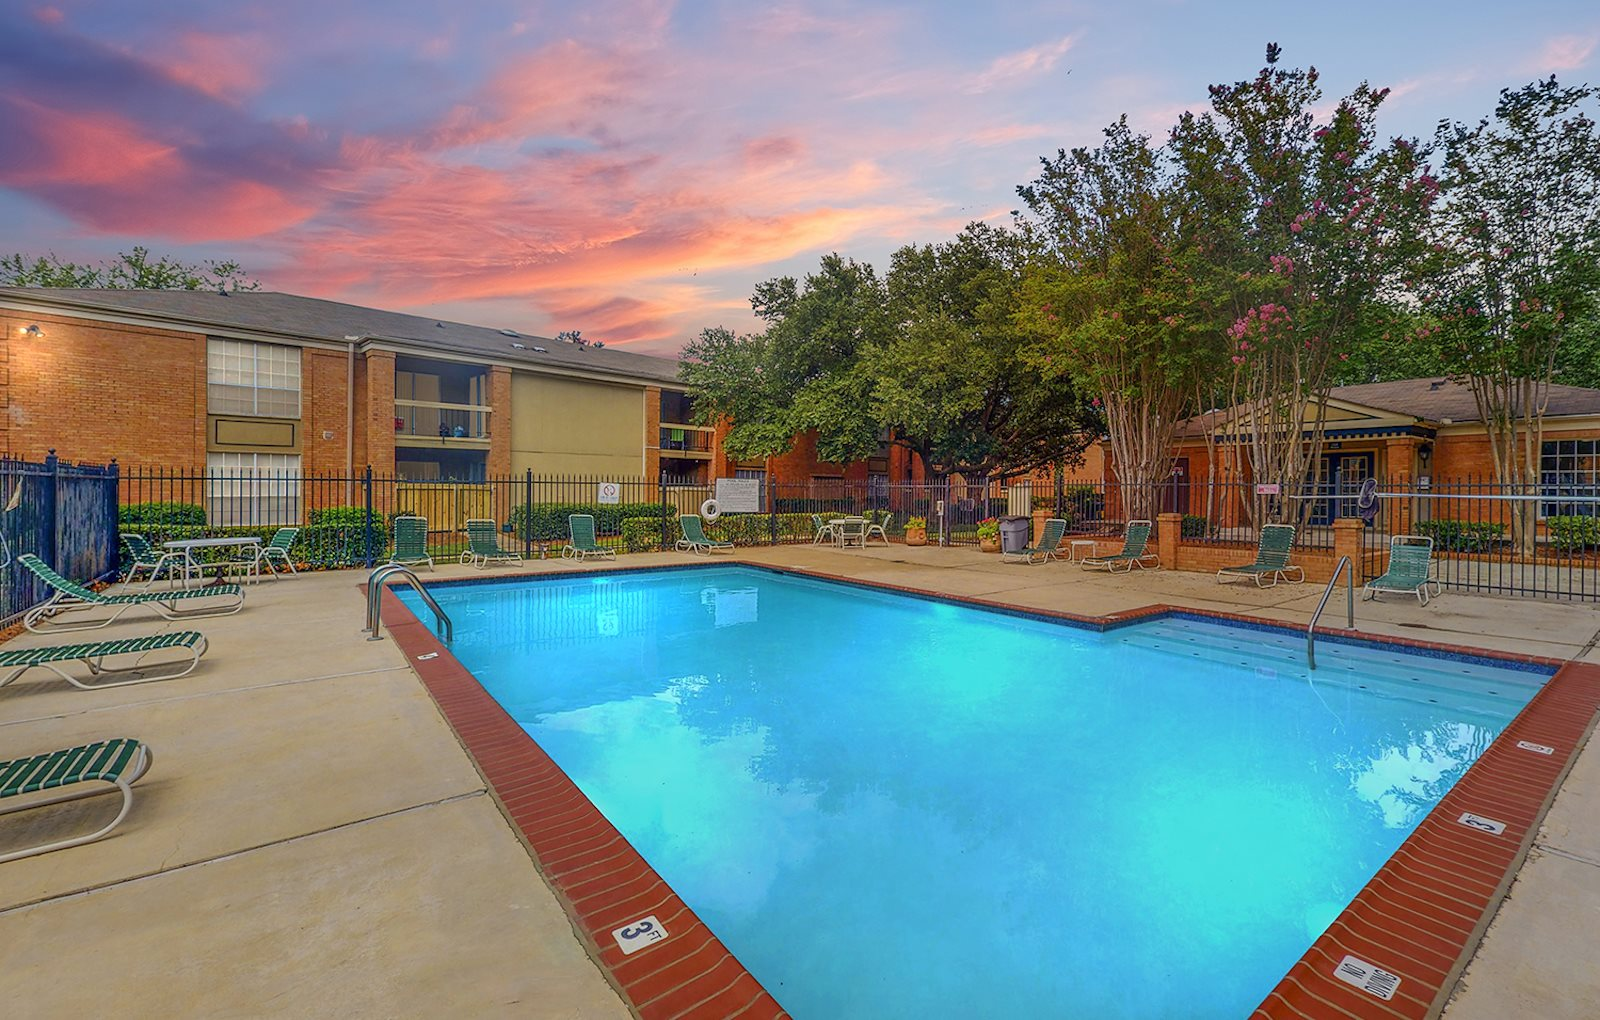 Swimming pool and large sundeck at sunset